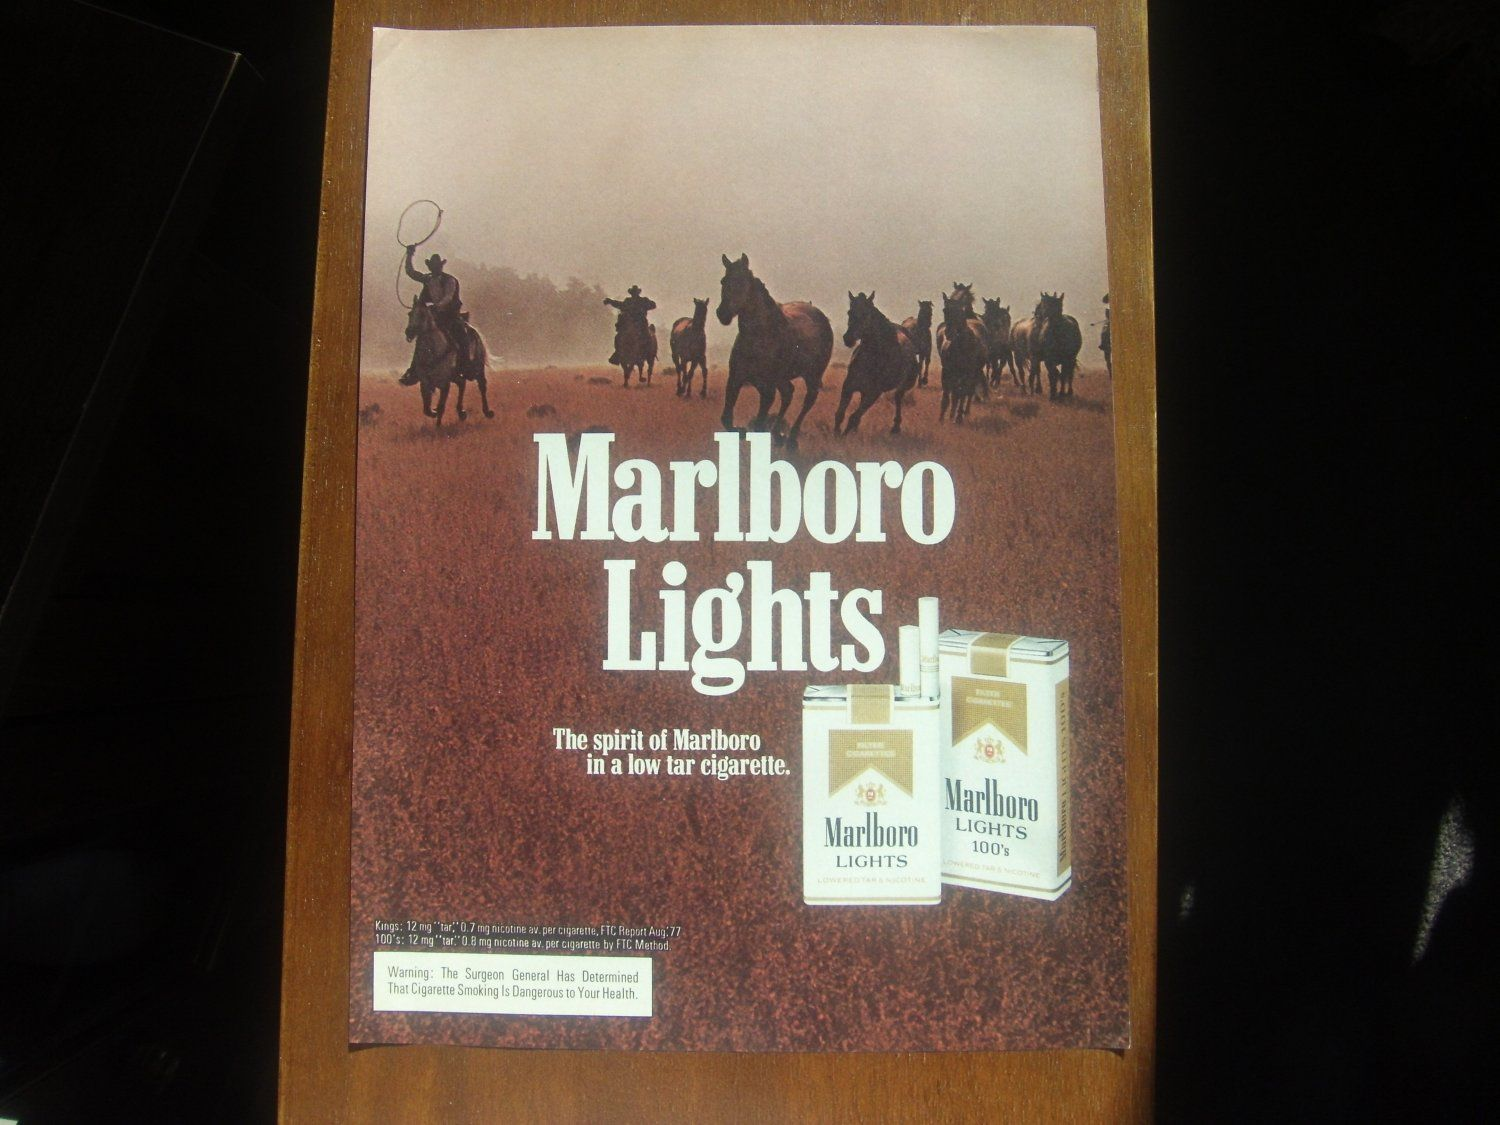 European cigarettes Marlboro to Liverpool